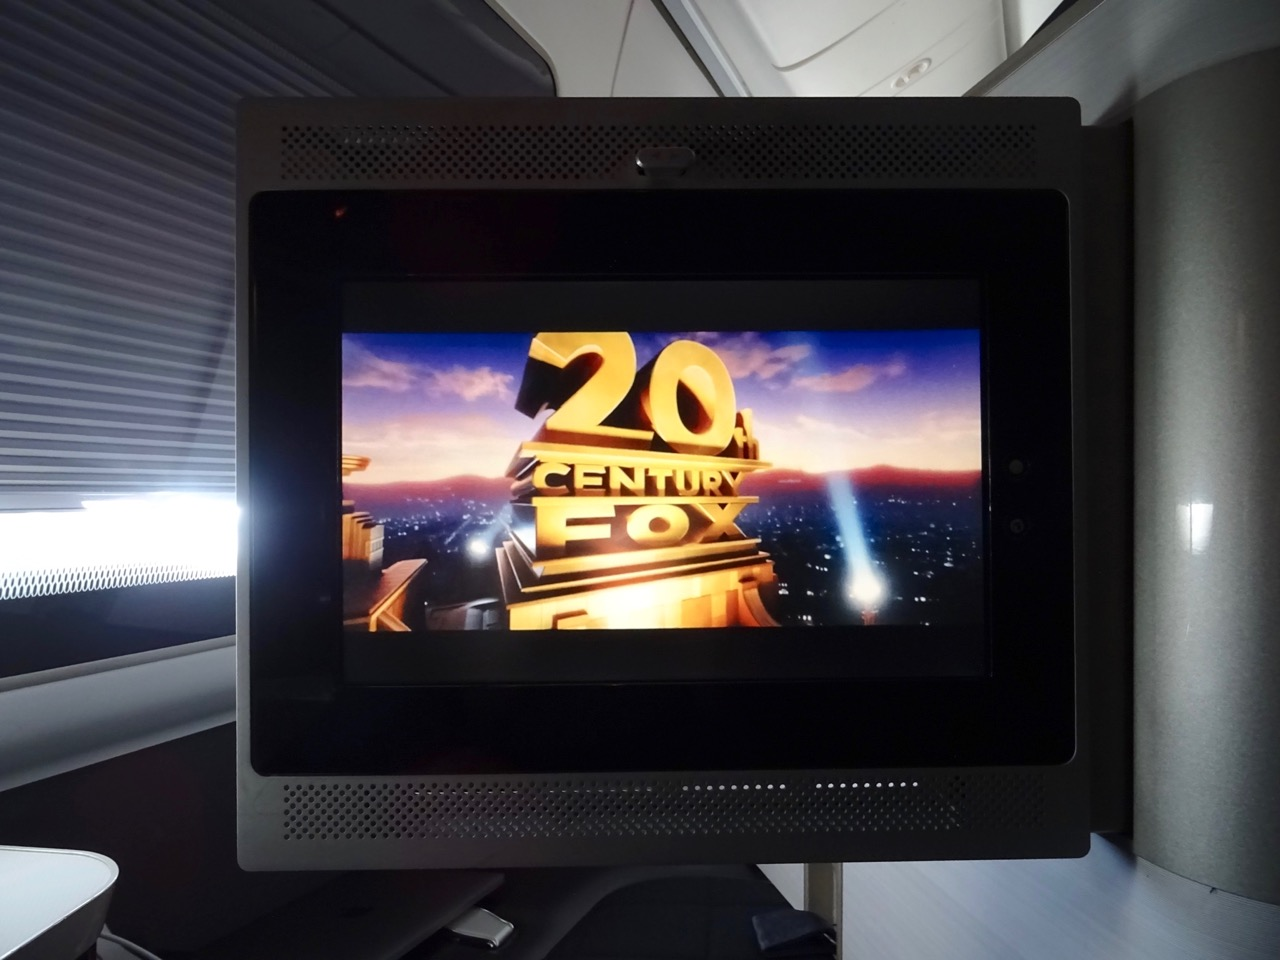 British Airways 777 First Class inflight entertainment screen